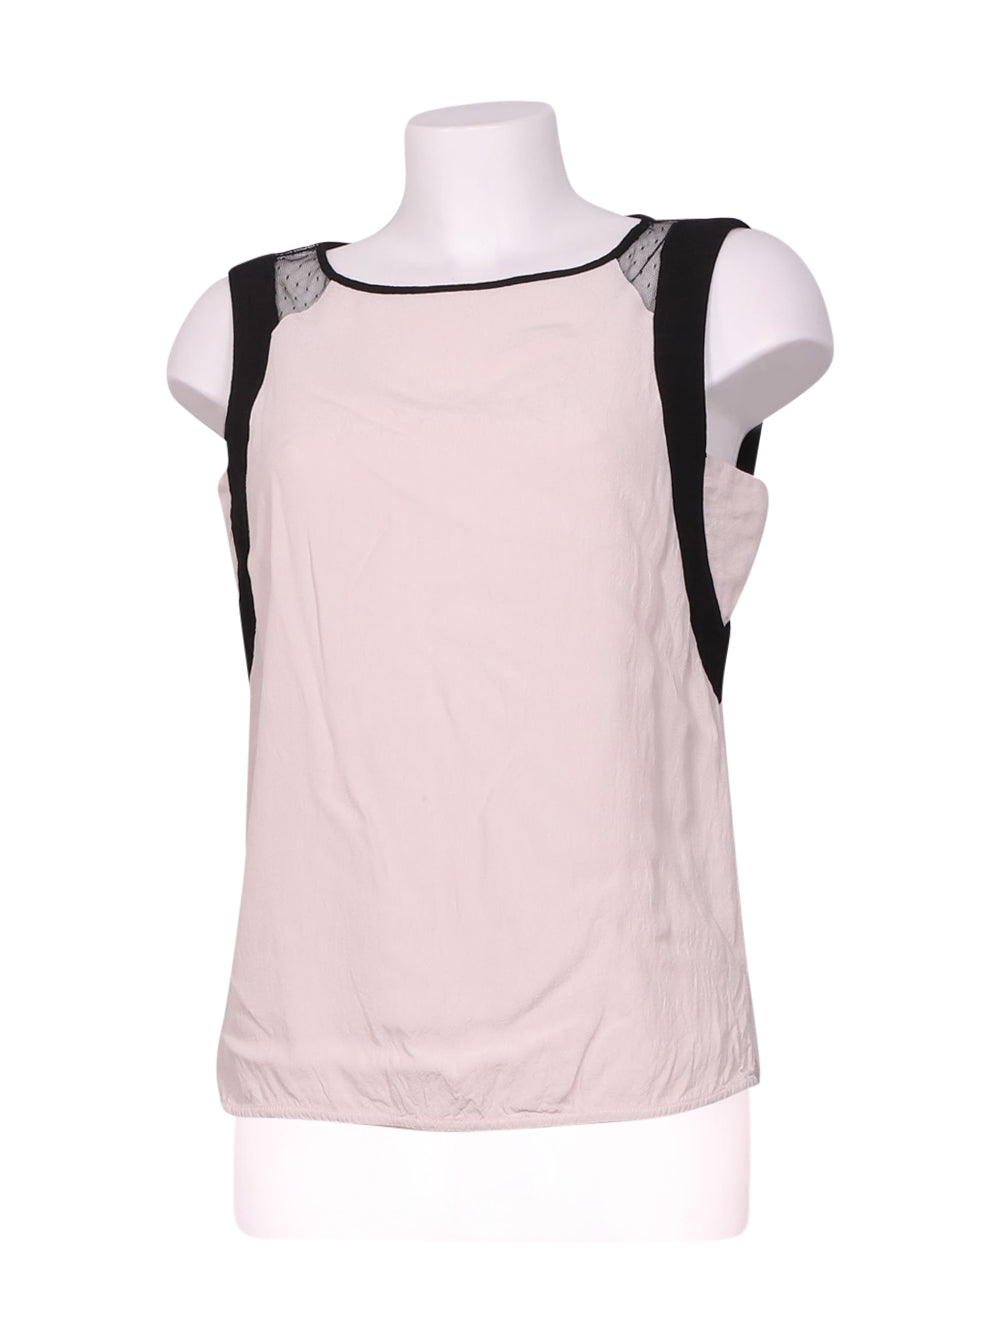 Front photo of Preloved Naf Naf Pink Woman's sleeveless top - size 8/S